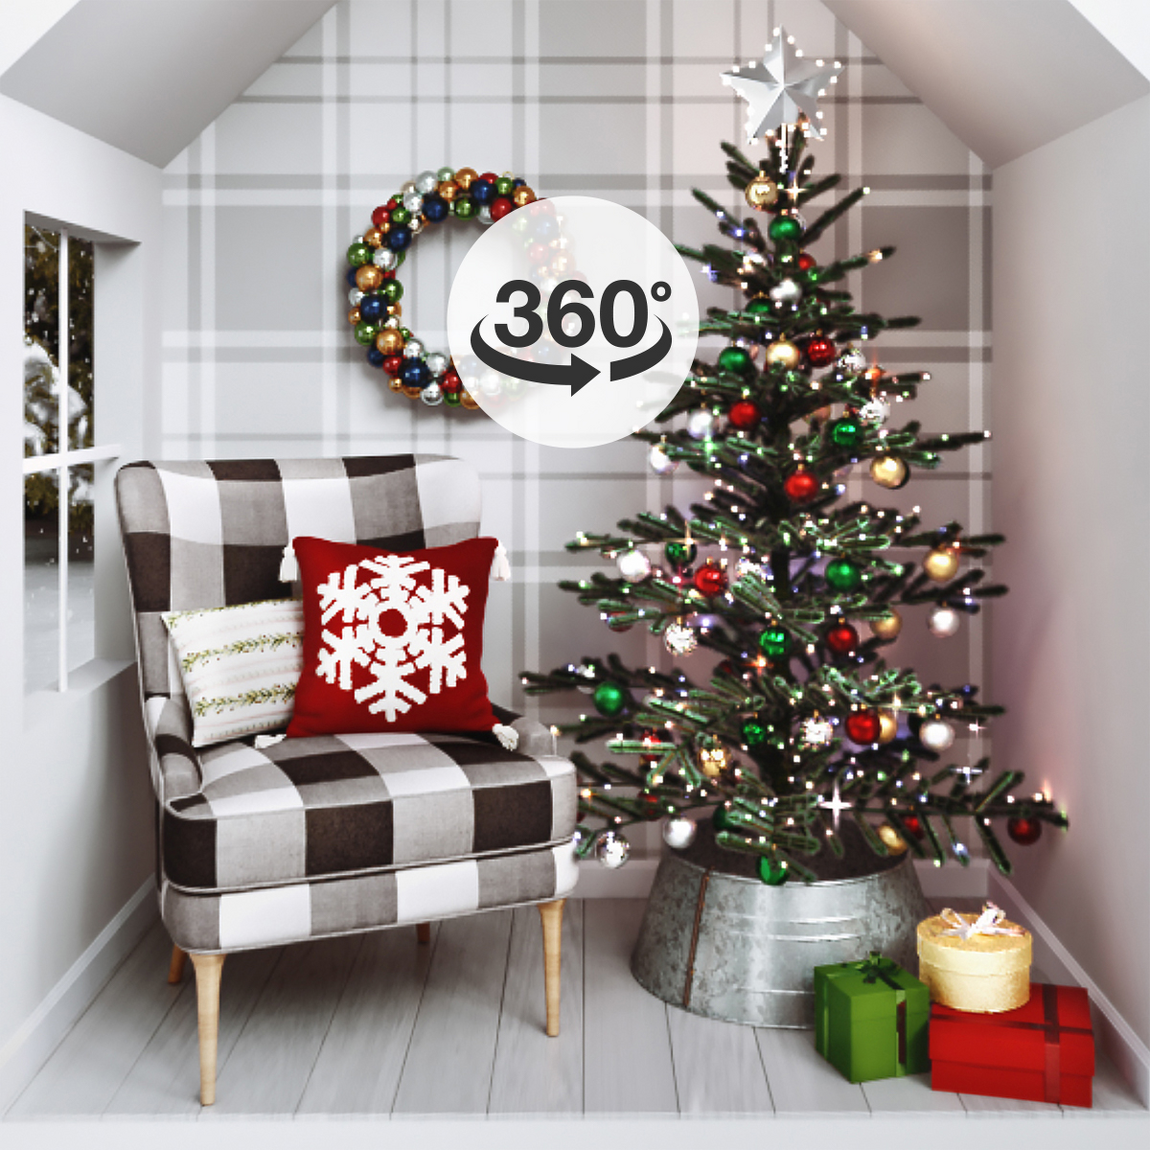 Shop Target For Christmas Decor And Gifts You Will Love At Great Low Prices Free Shipping And Free Pick Up In St Christmas Decorations Christmas Holiday Decor